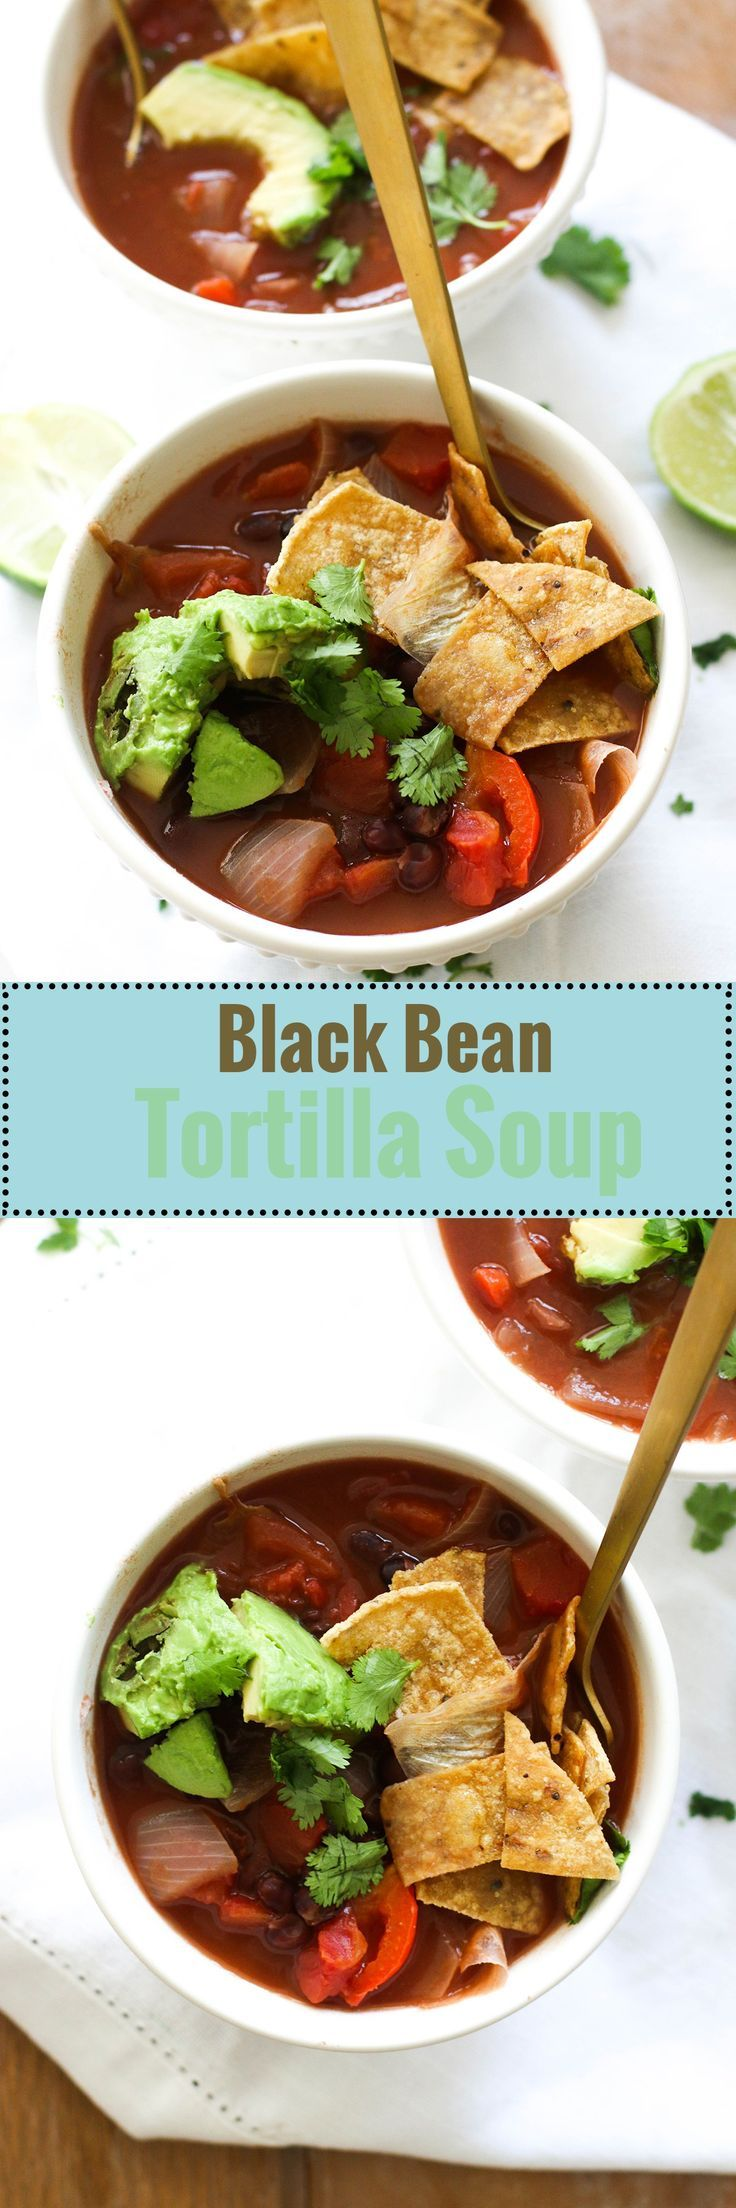 This black bean tortilla soup is vegan, gluten free, and filled with protein! It's ready in under an hour and pairs well with homemade tortilla chips, making it the perfect quick meal. #dinner #lunch #mealprep